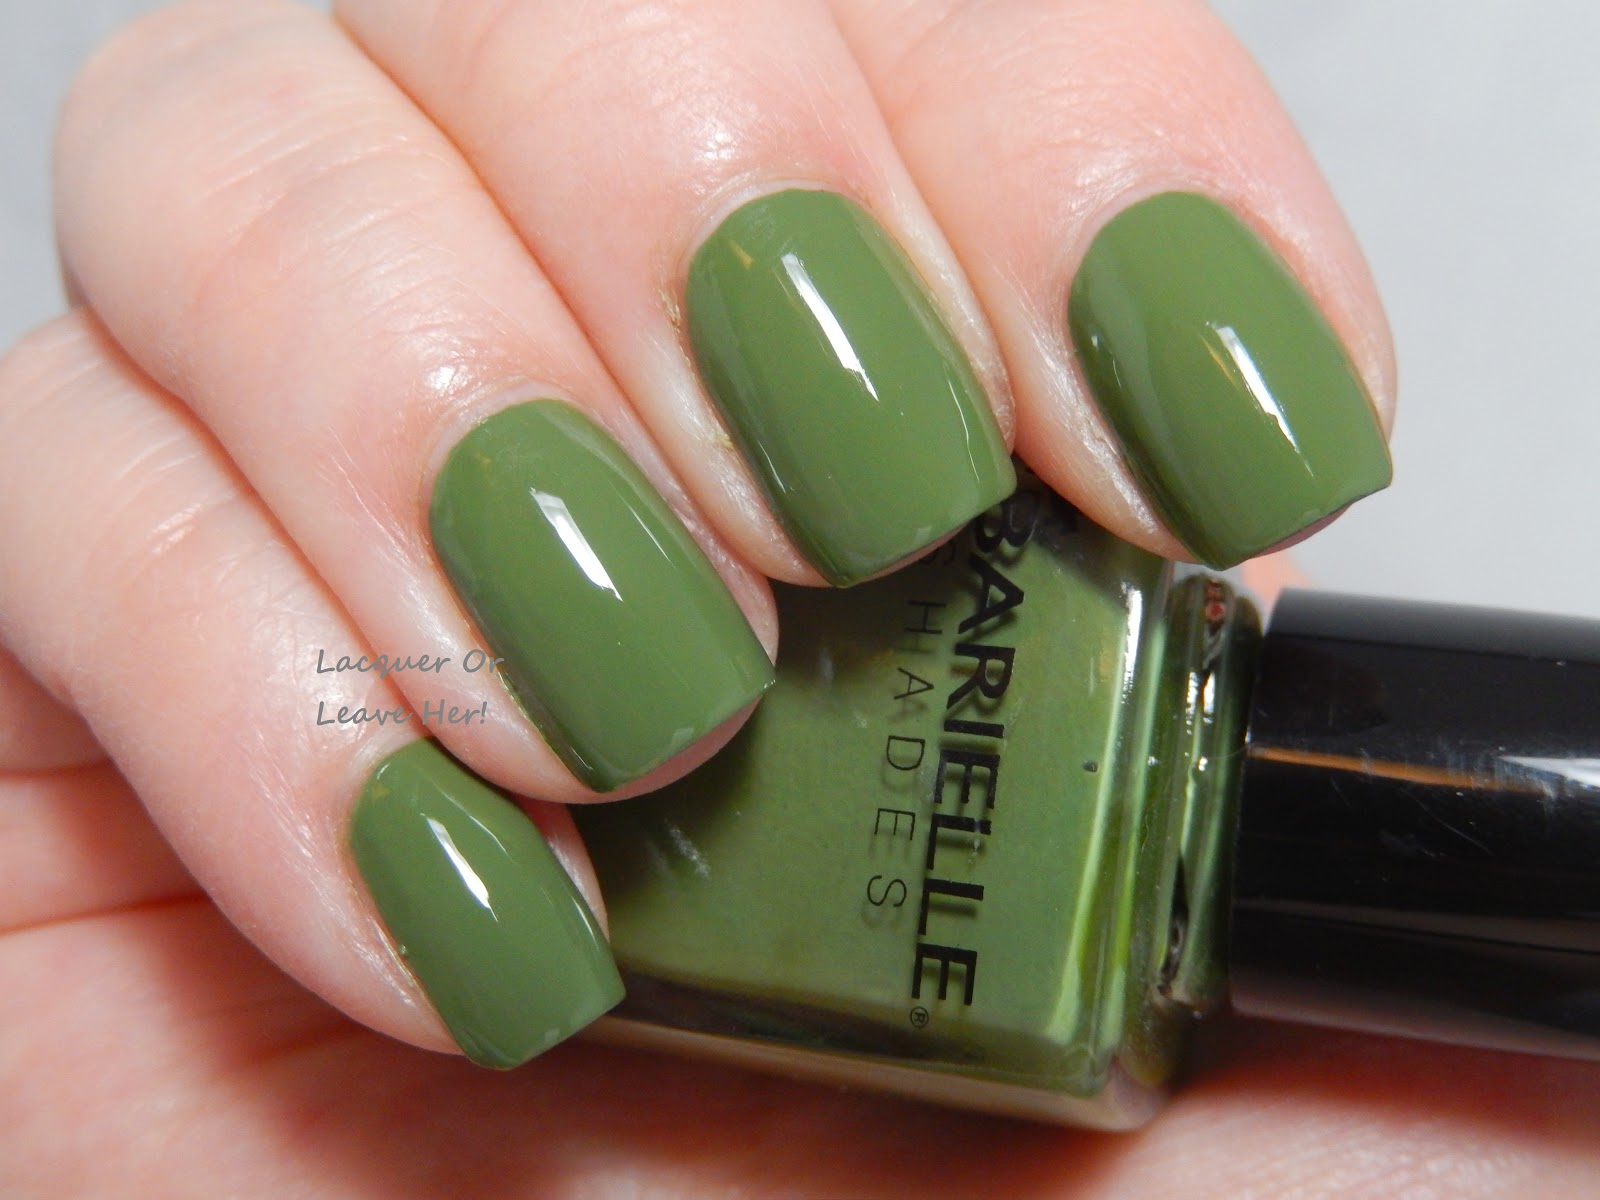 Lacquer or Leave Her!: Review & stamping test: Barielle Jetsetter ...